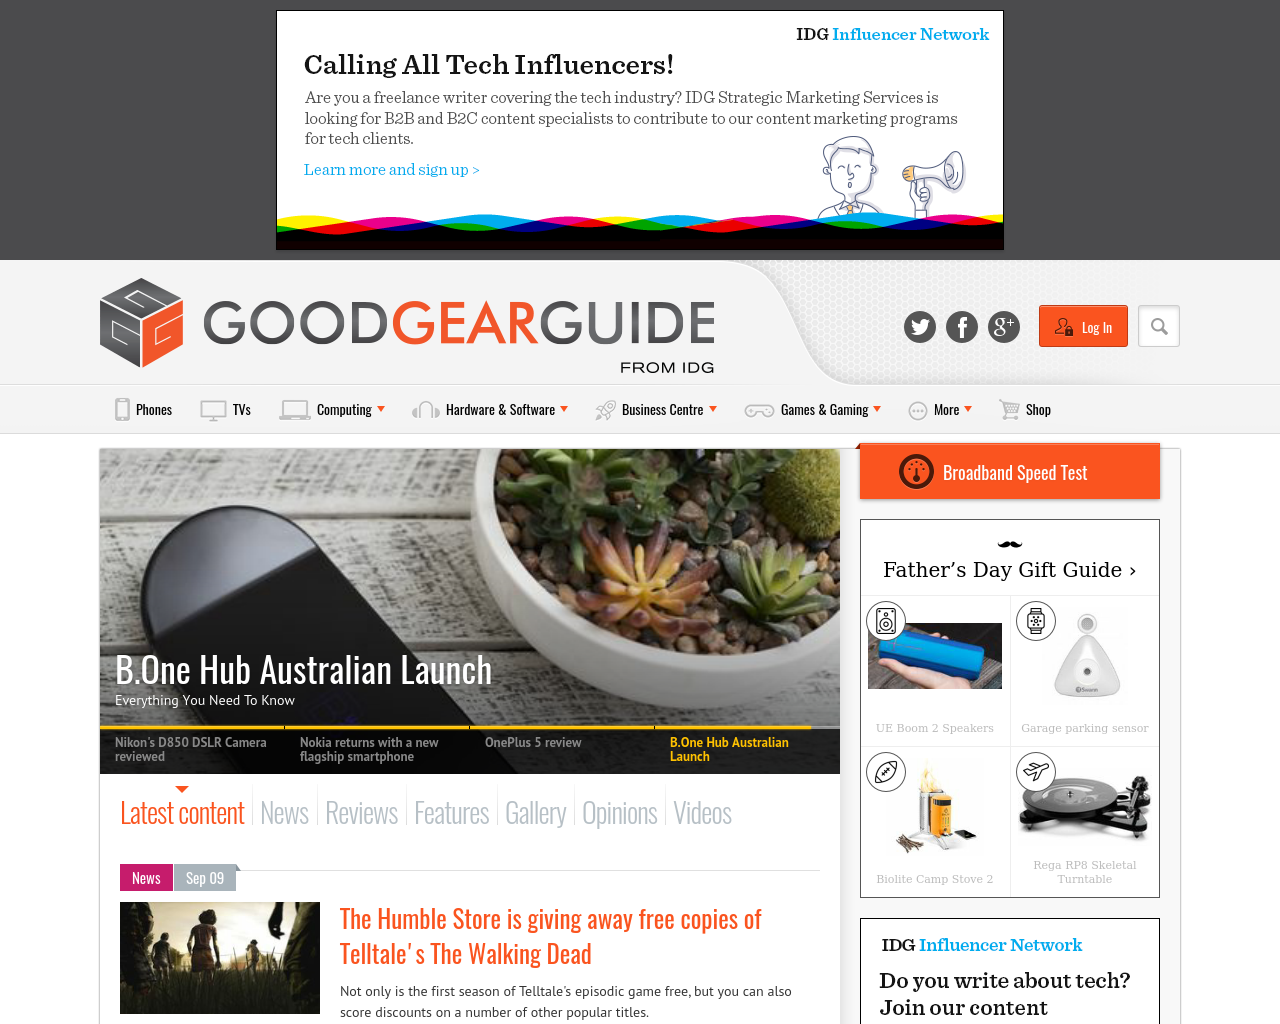 Good-Gear-Guide-Advertising-Reviews-Pricing